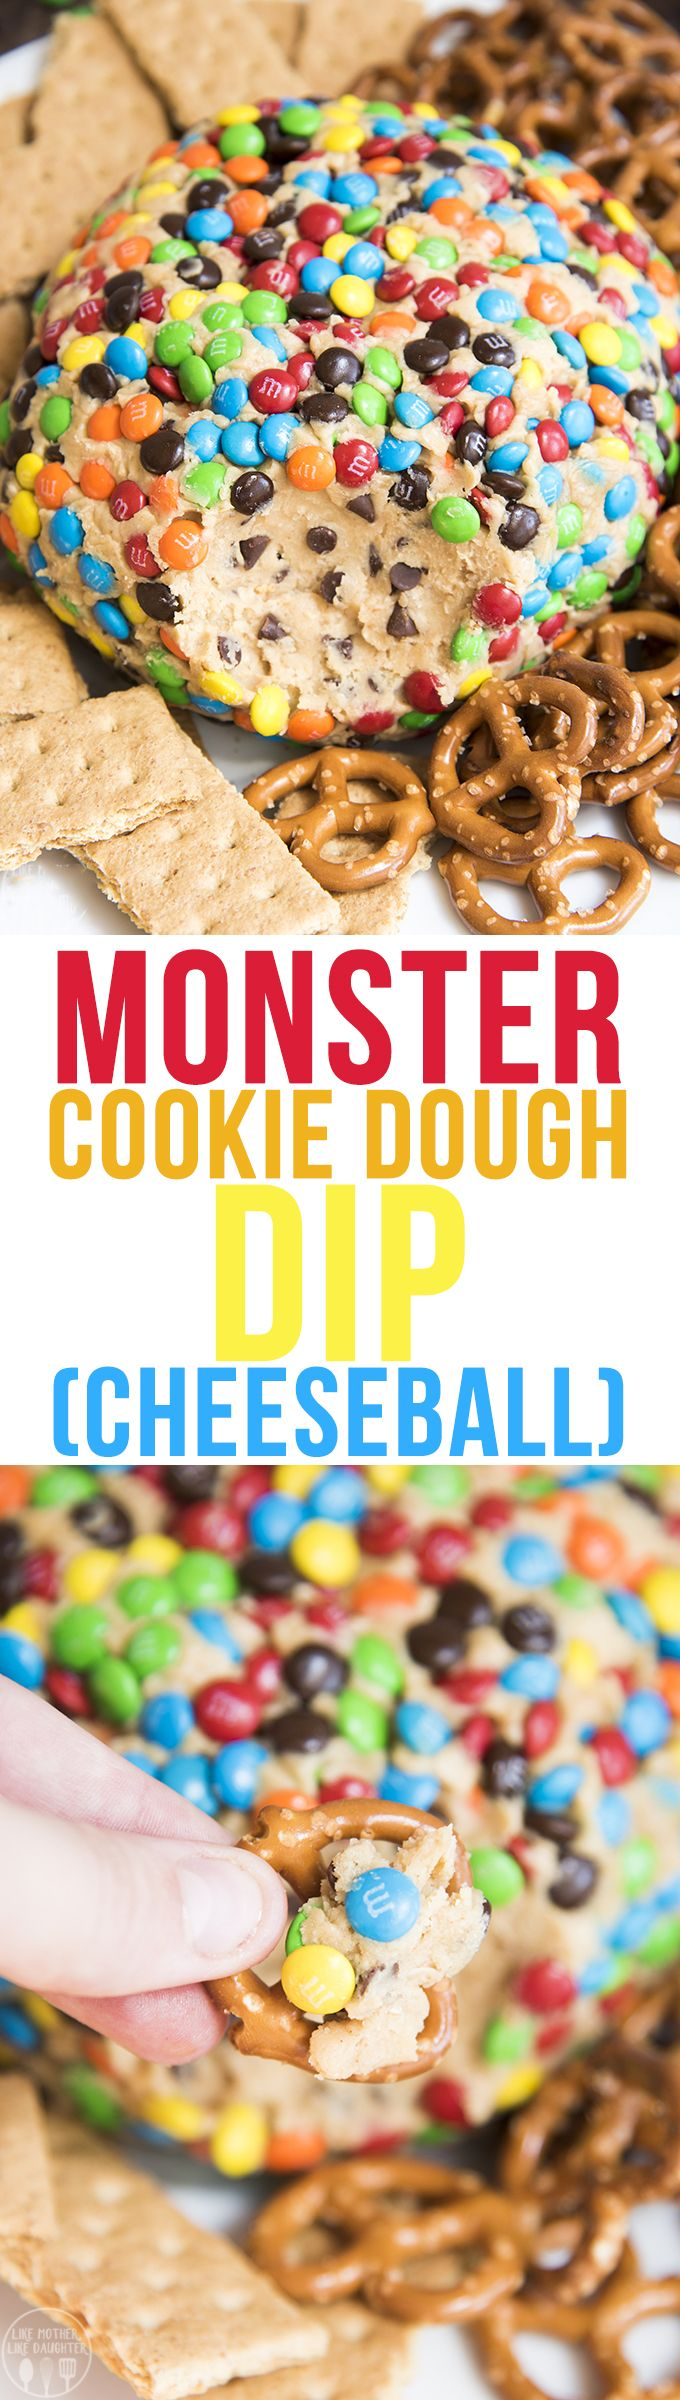 This monster cookie dough cheeseball is a delicious peanut butter dessert dip with the same great taste of monster cookies. Perfect served with pretzels, graham crackers, and other cookies!